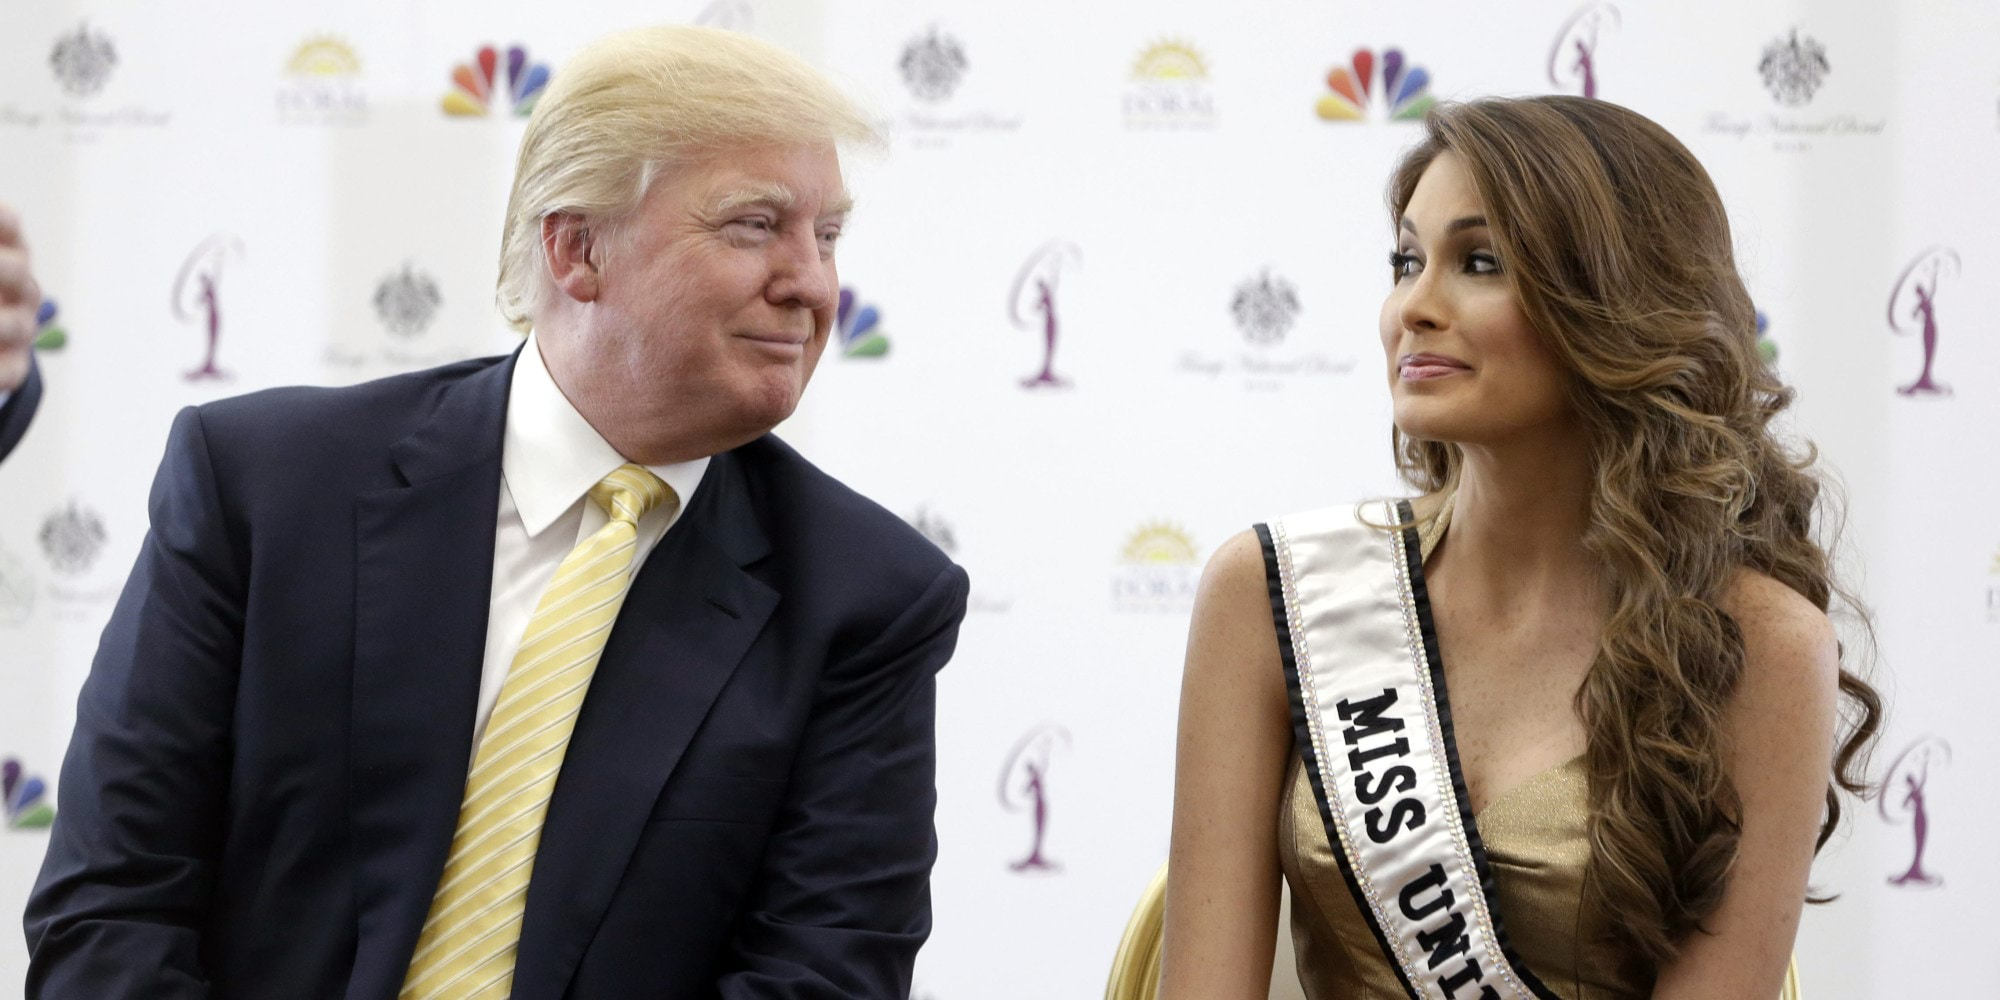 Donald Trump, left, and Miss Universe, Gabriela Isler, of Venezuela, talk during a news conference, Thursday, Oct. 2, 2014, in Doral, Fla. Three of the last six Miss Universe titles have gone to Venezuelan contestants. This year's Miss Universe competition has a unique undertone: It will take place in South Florida, home to the largest number of Venezuelans in the U.S., the majority strongly against the current Venezuelan government. (AP Photo/Wilfredo Lee)